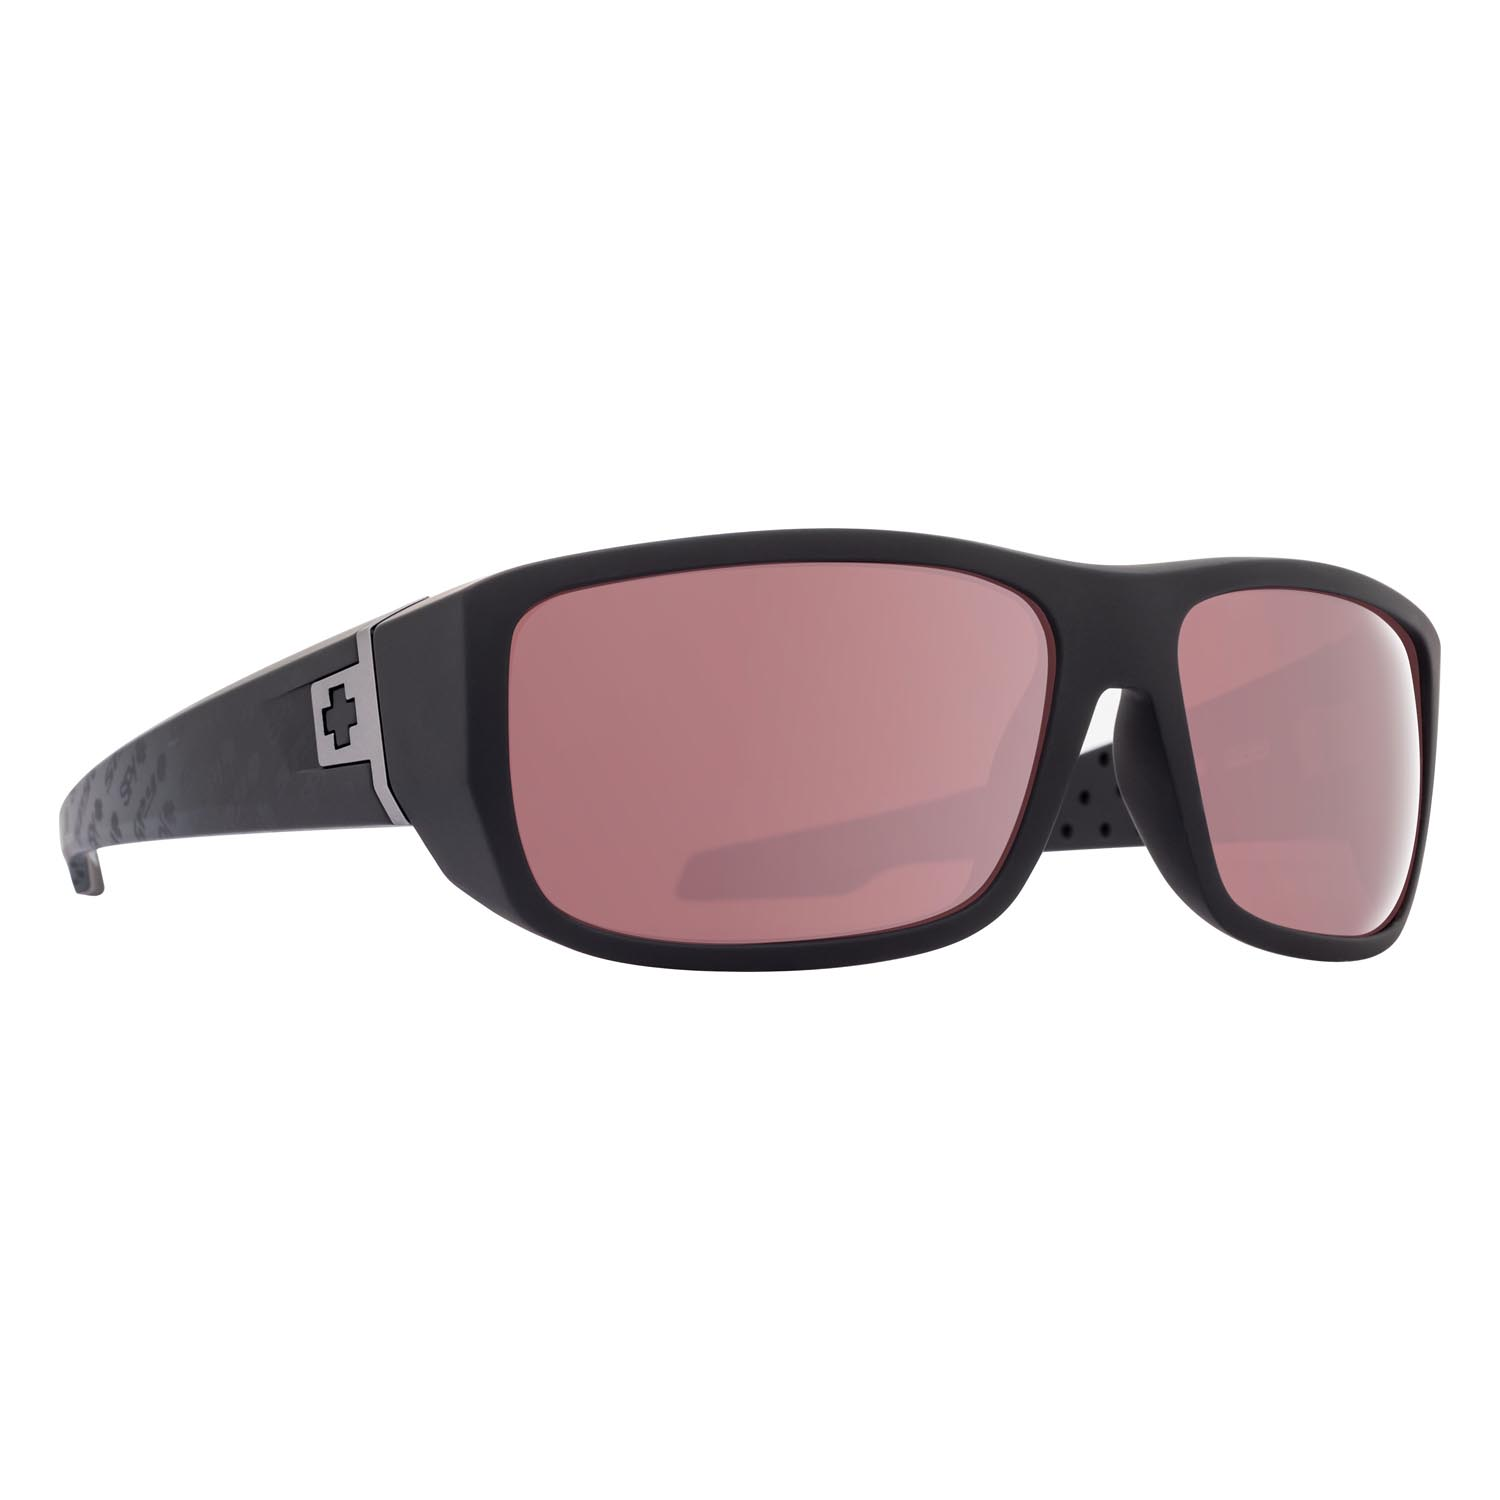 Spy Sunglasses mc3 in matte black with rose silver mirror polarized lenses